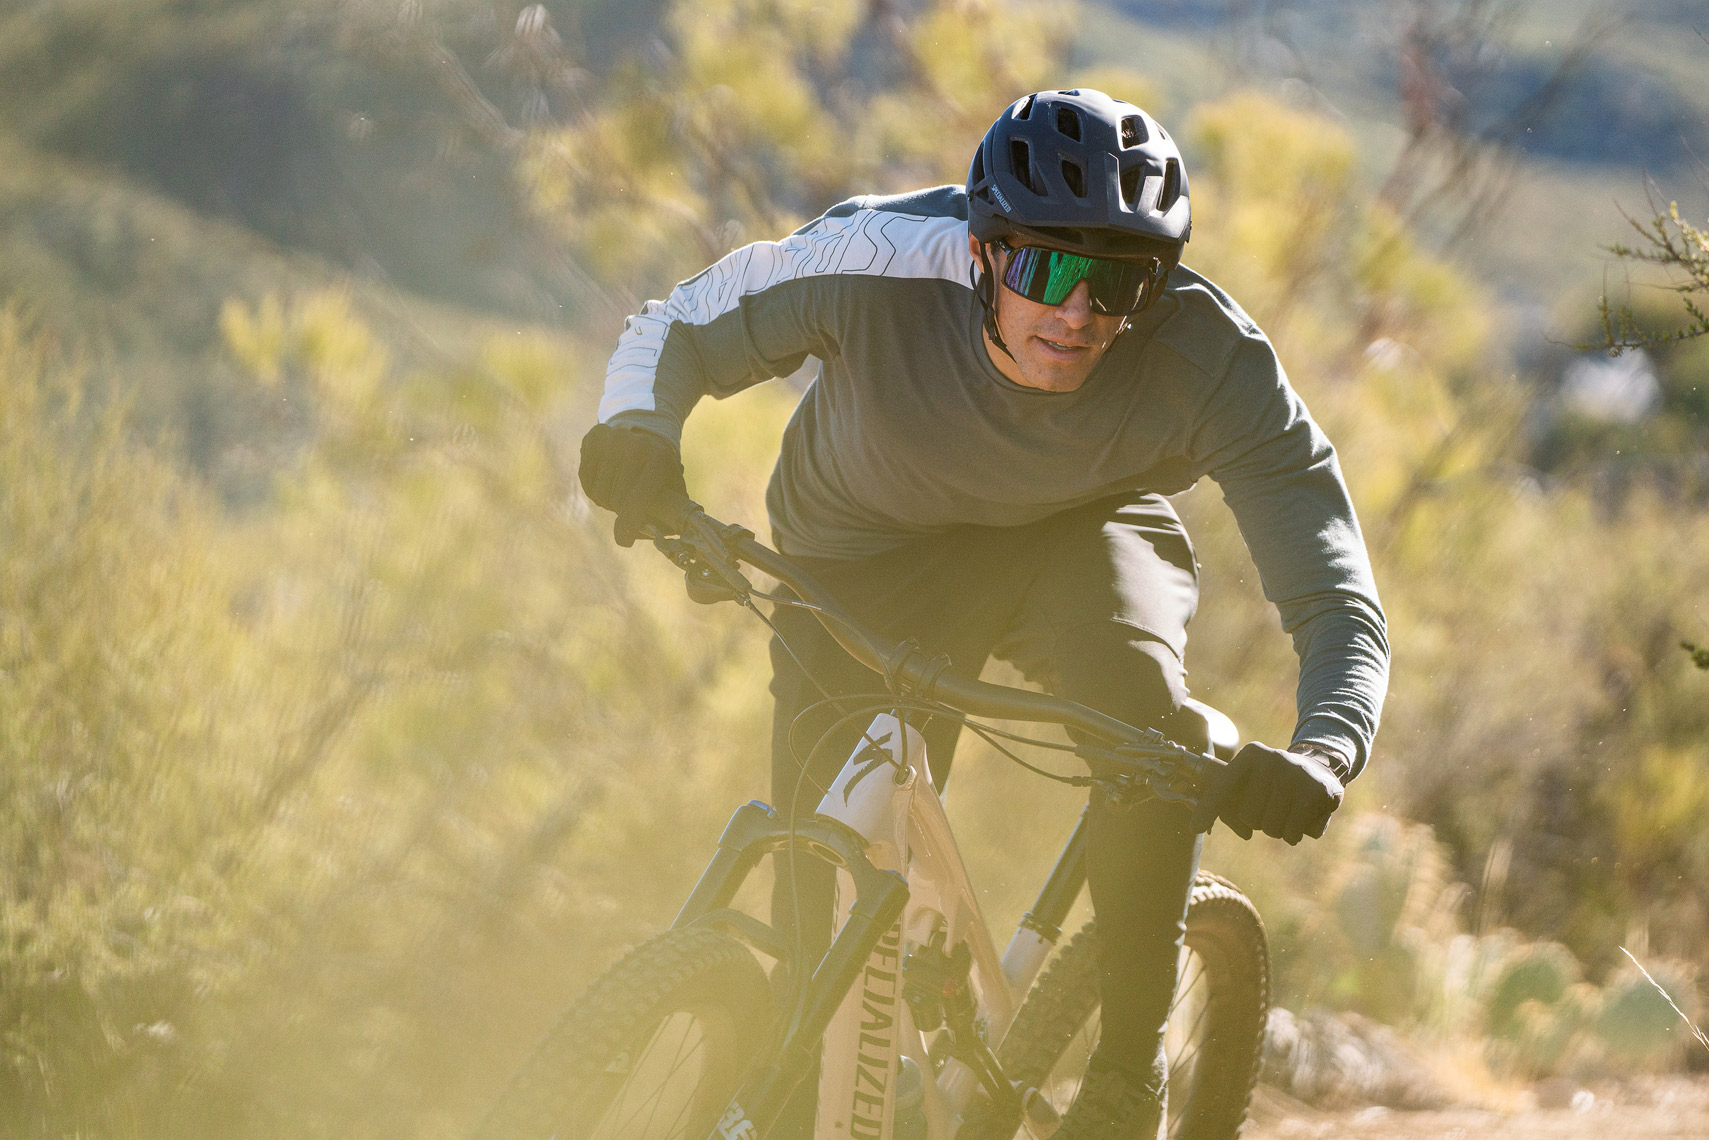 Specialized_S21_MTB_Clothing_Palm_Springs_VanWeelden-187